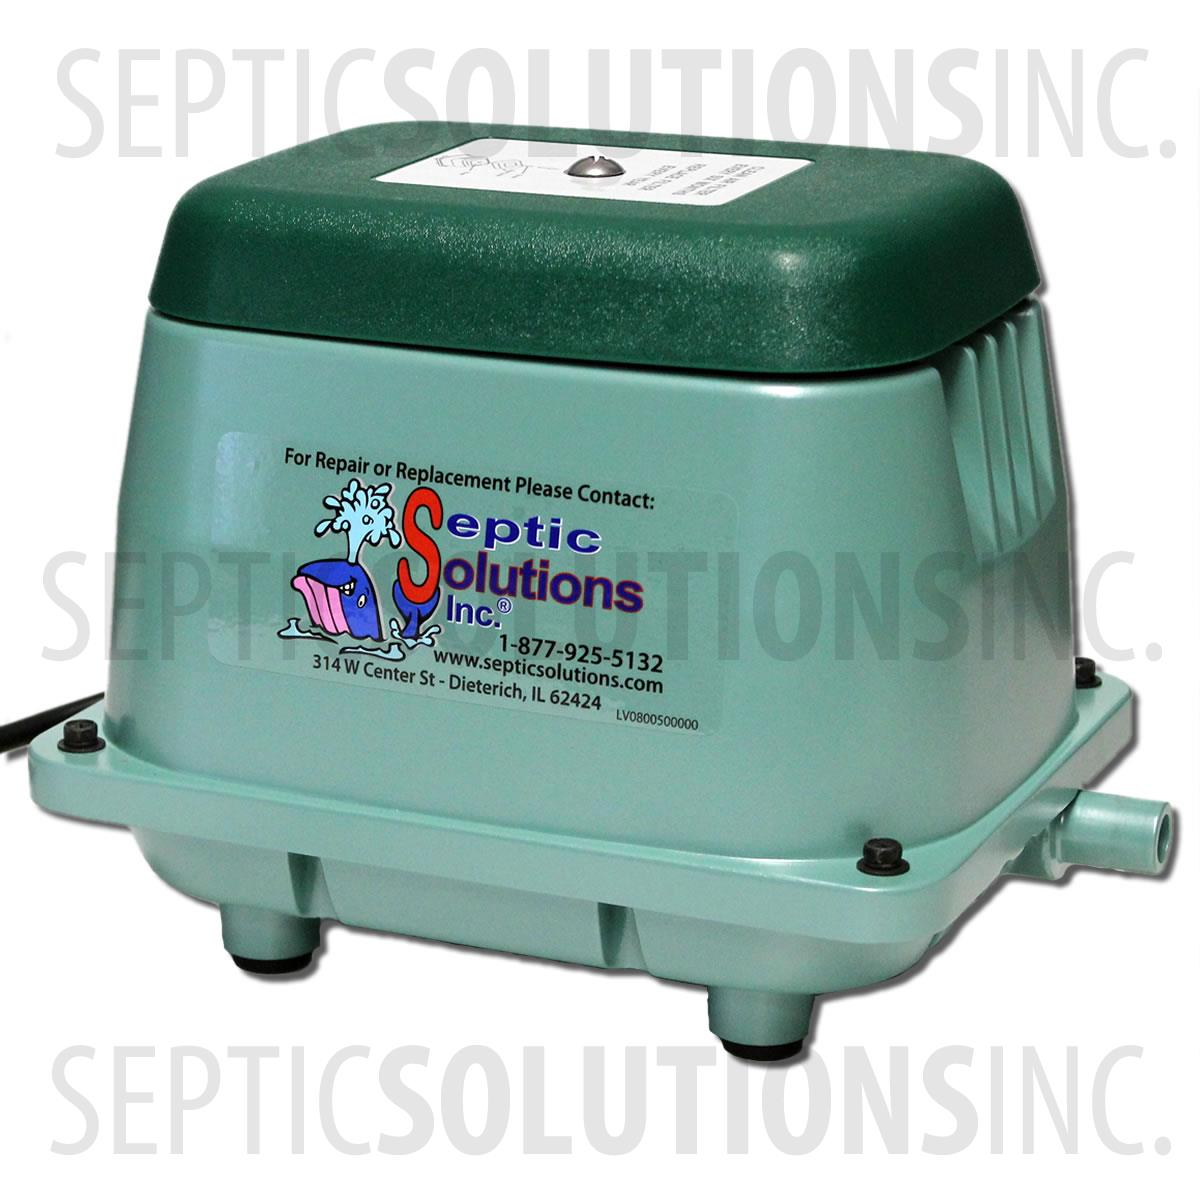 CS500_1?w=600 clearstream aerobic septic system air pumps and repair parts  at honlapkeszites.co